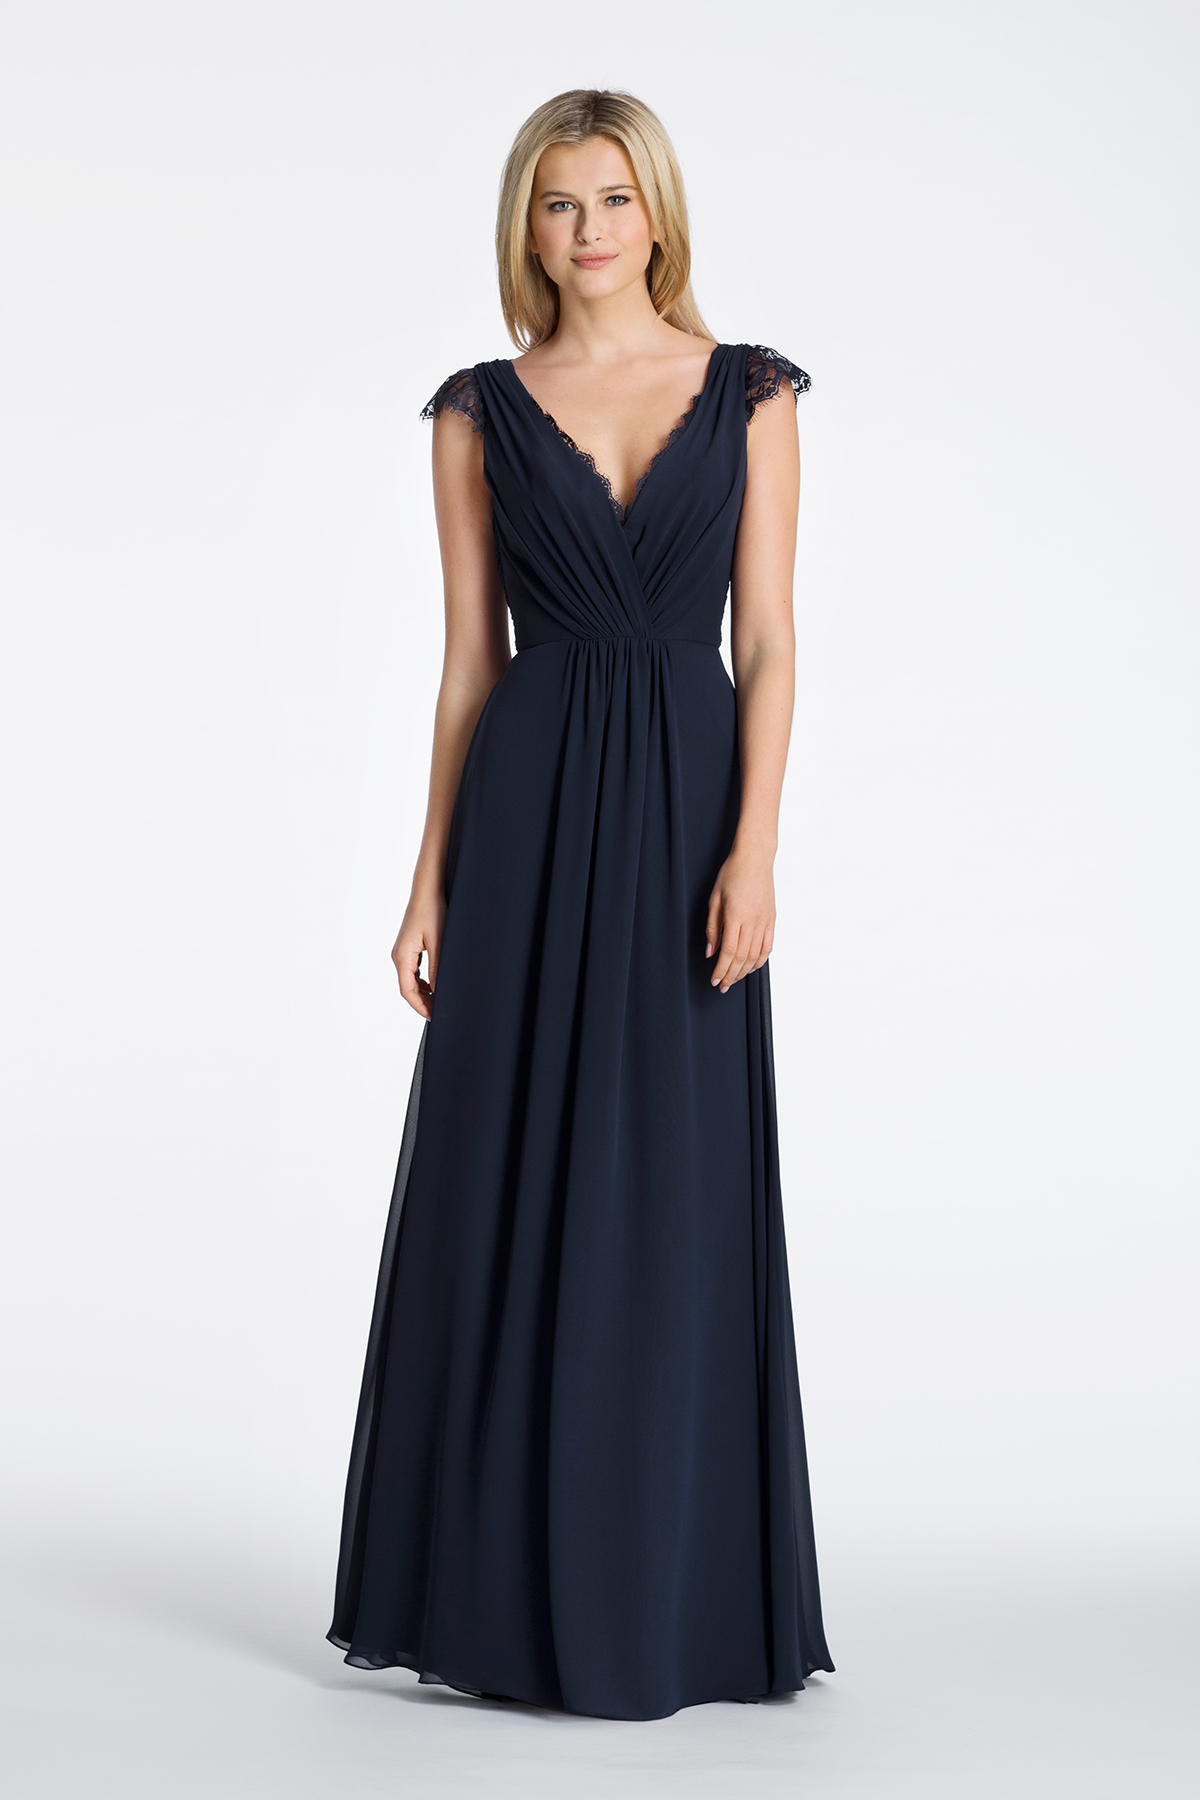 Bridesmaids Special Occasion Dresses and Bridal Party